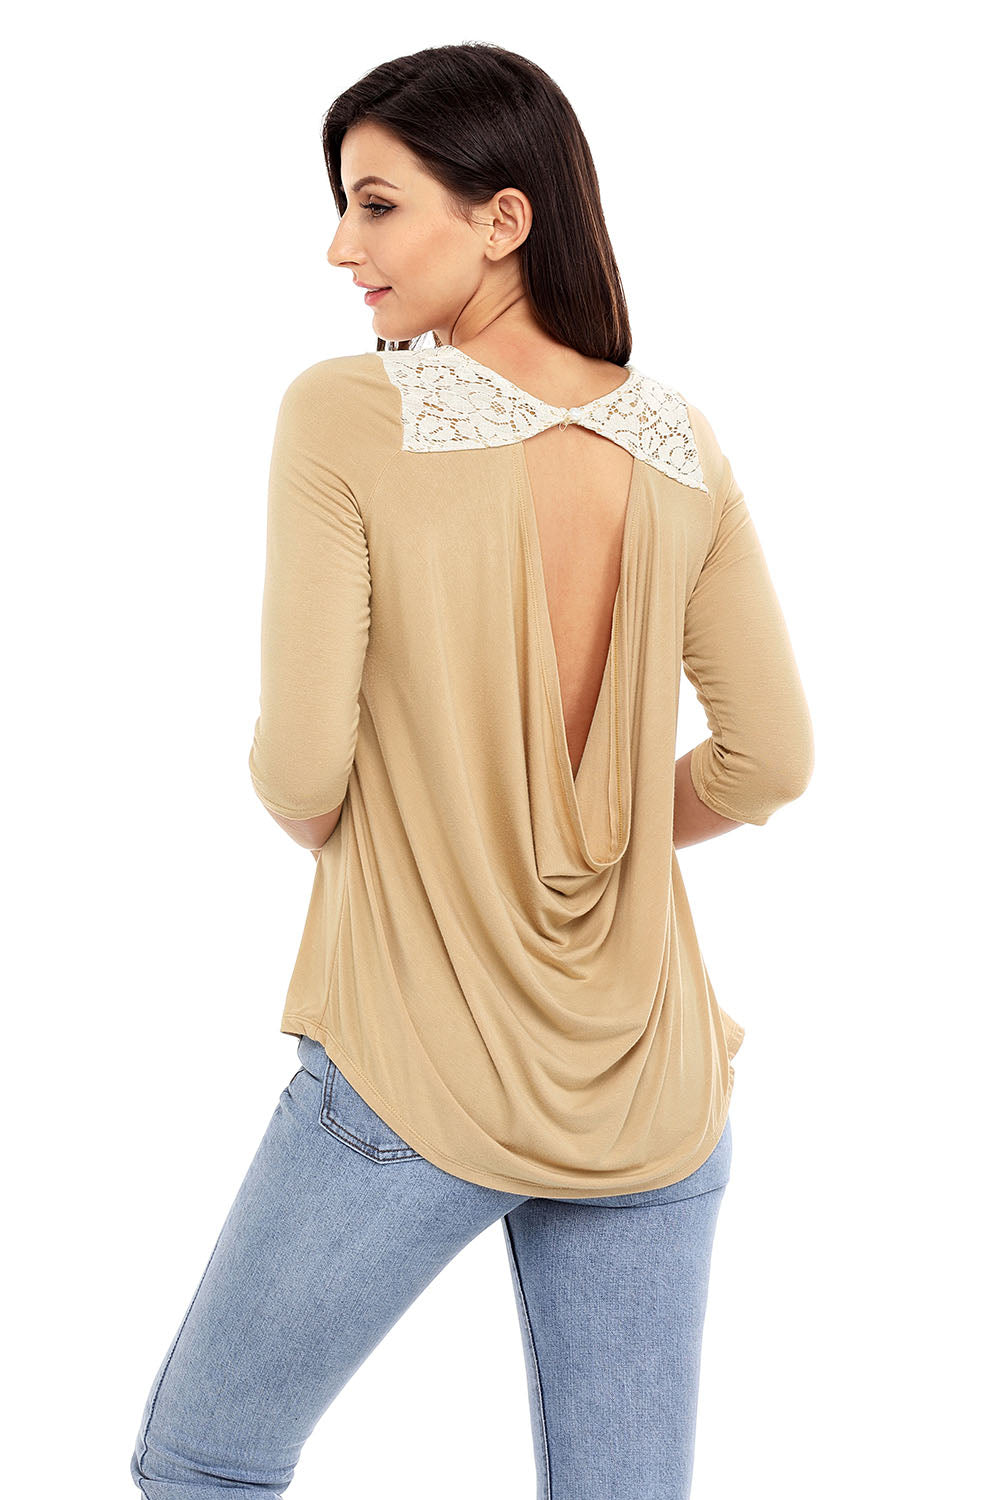 Come Around Apricot Low Cut Top with Lace Insert